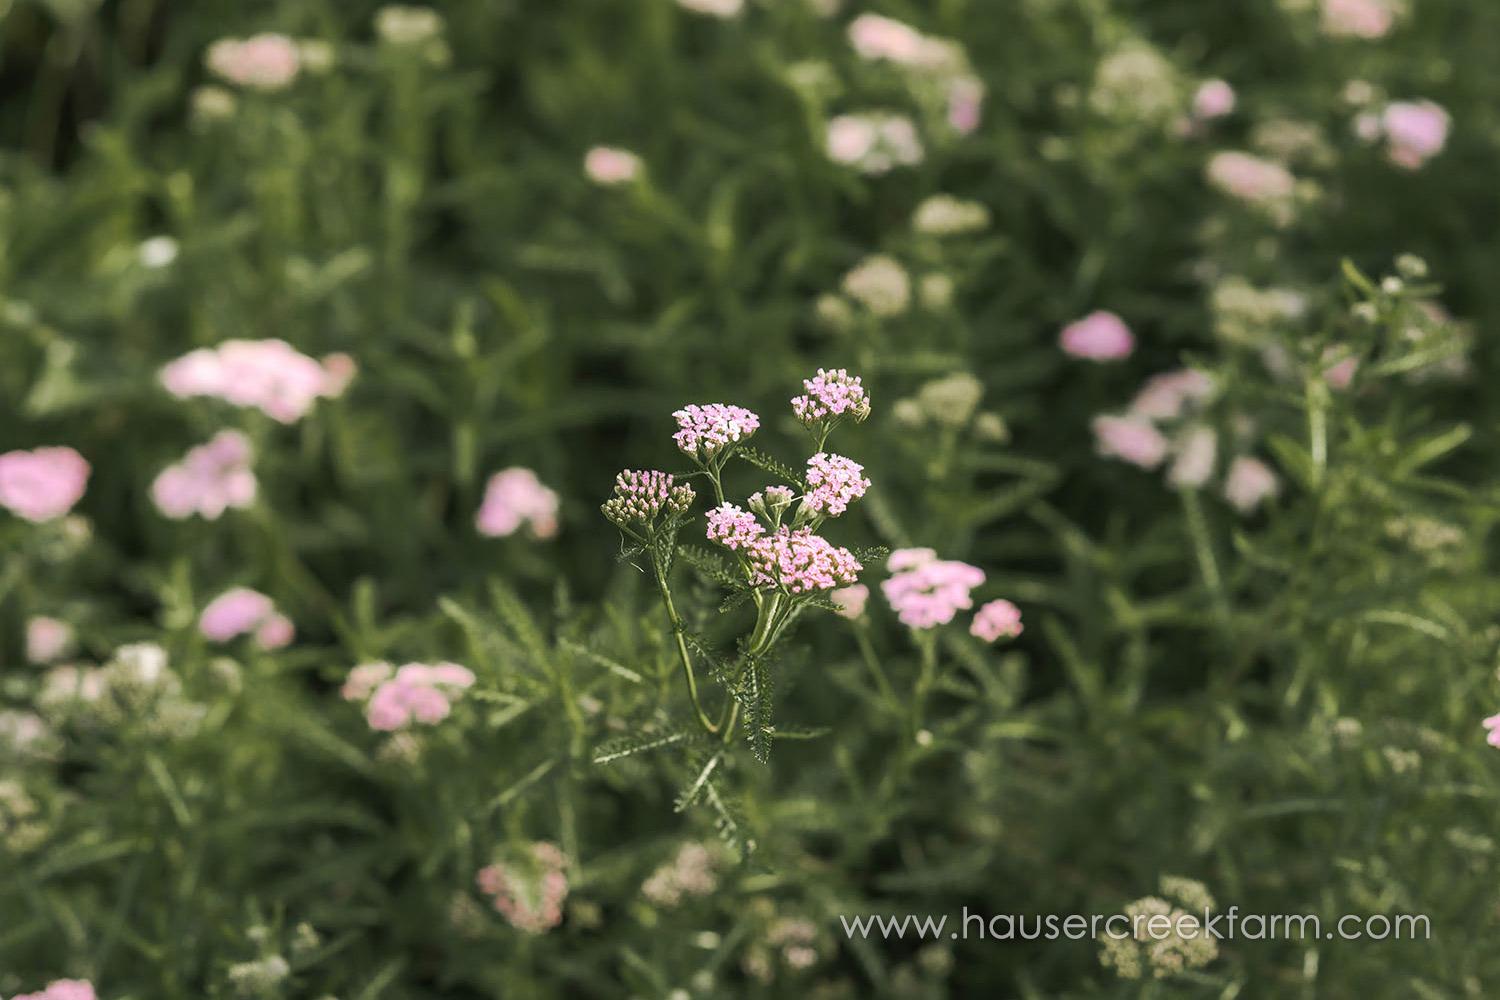 yarrow-at-hauser-creek-farm-in-north-carolina-2017_319.jpg